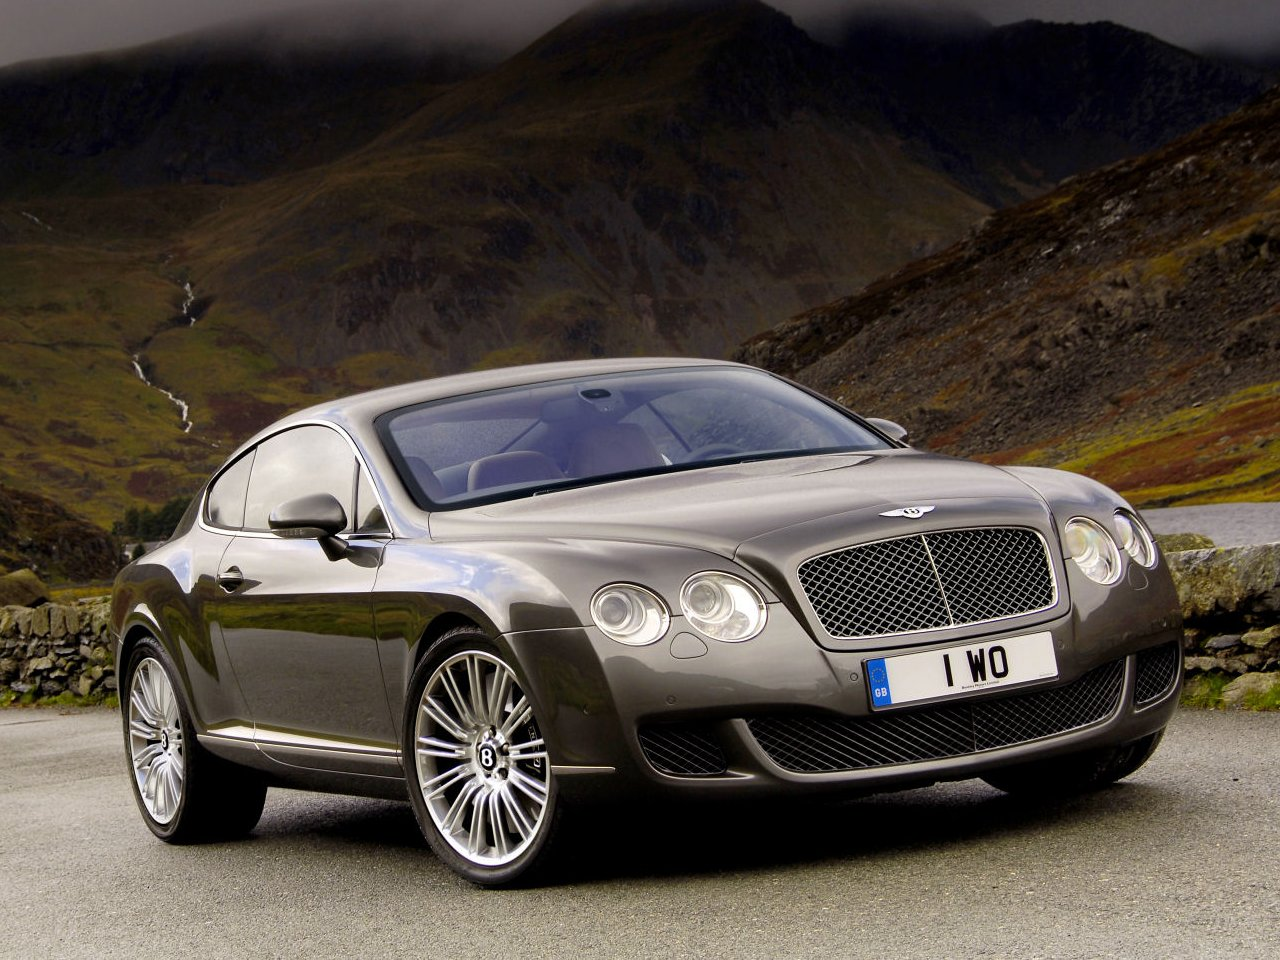 Cars And Cars: 2010 Bentley Continental GT